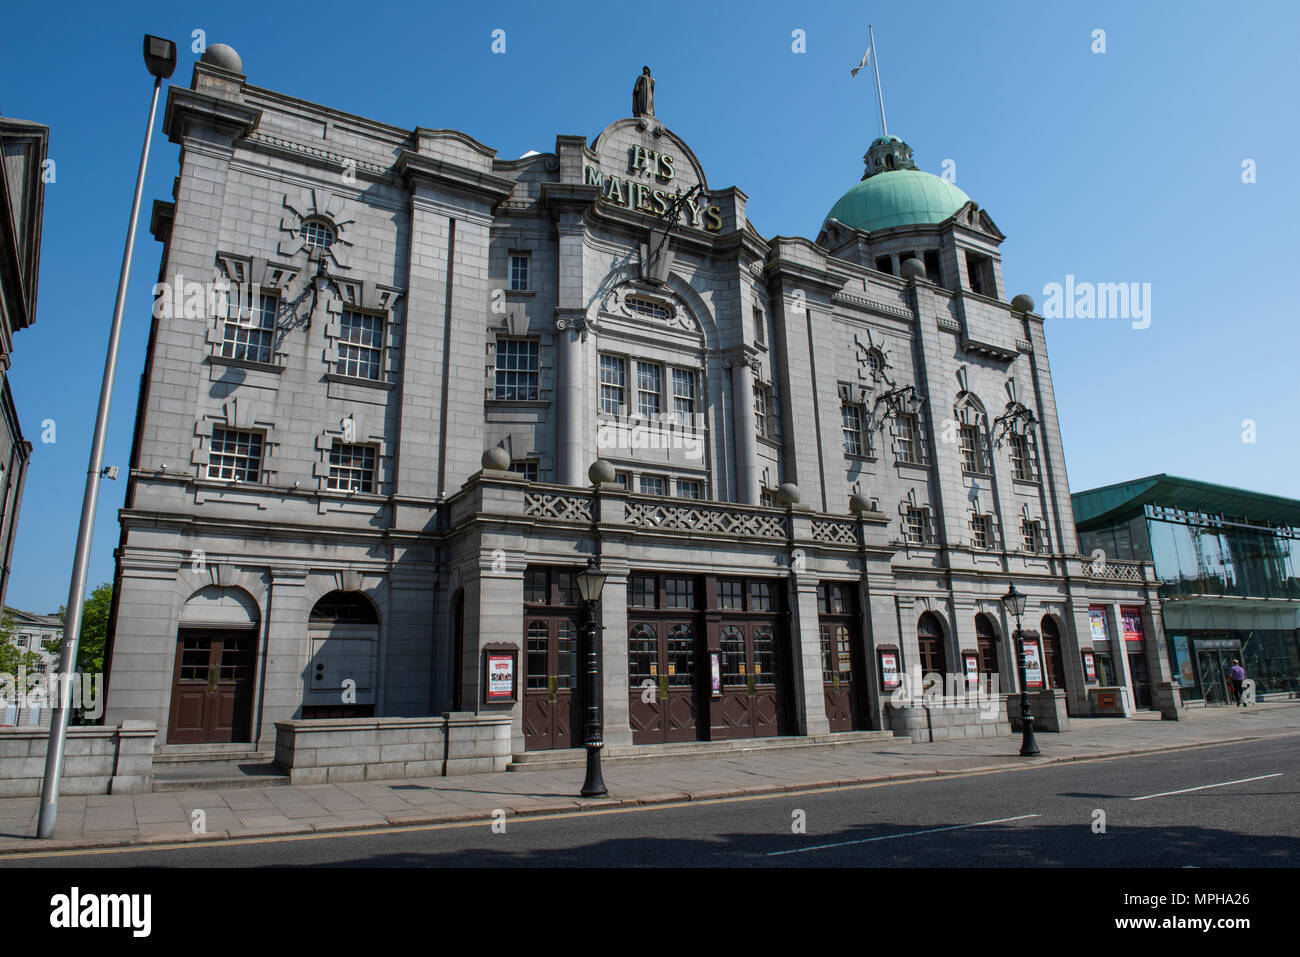 United Kingdom, Scotland, Aberdeen, historic Old Aberdeen. His Majesty's Theatre, the largest in north-east Scotland, seating more than 1,400. - Stock Image